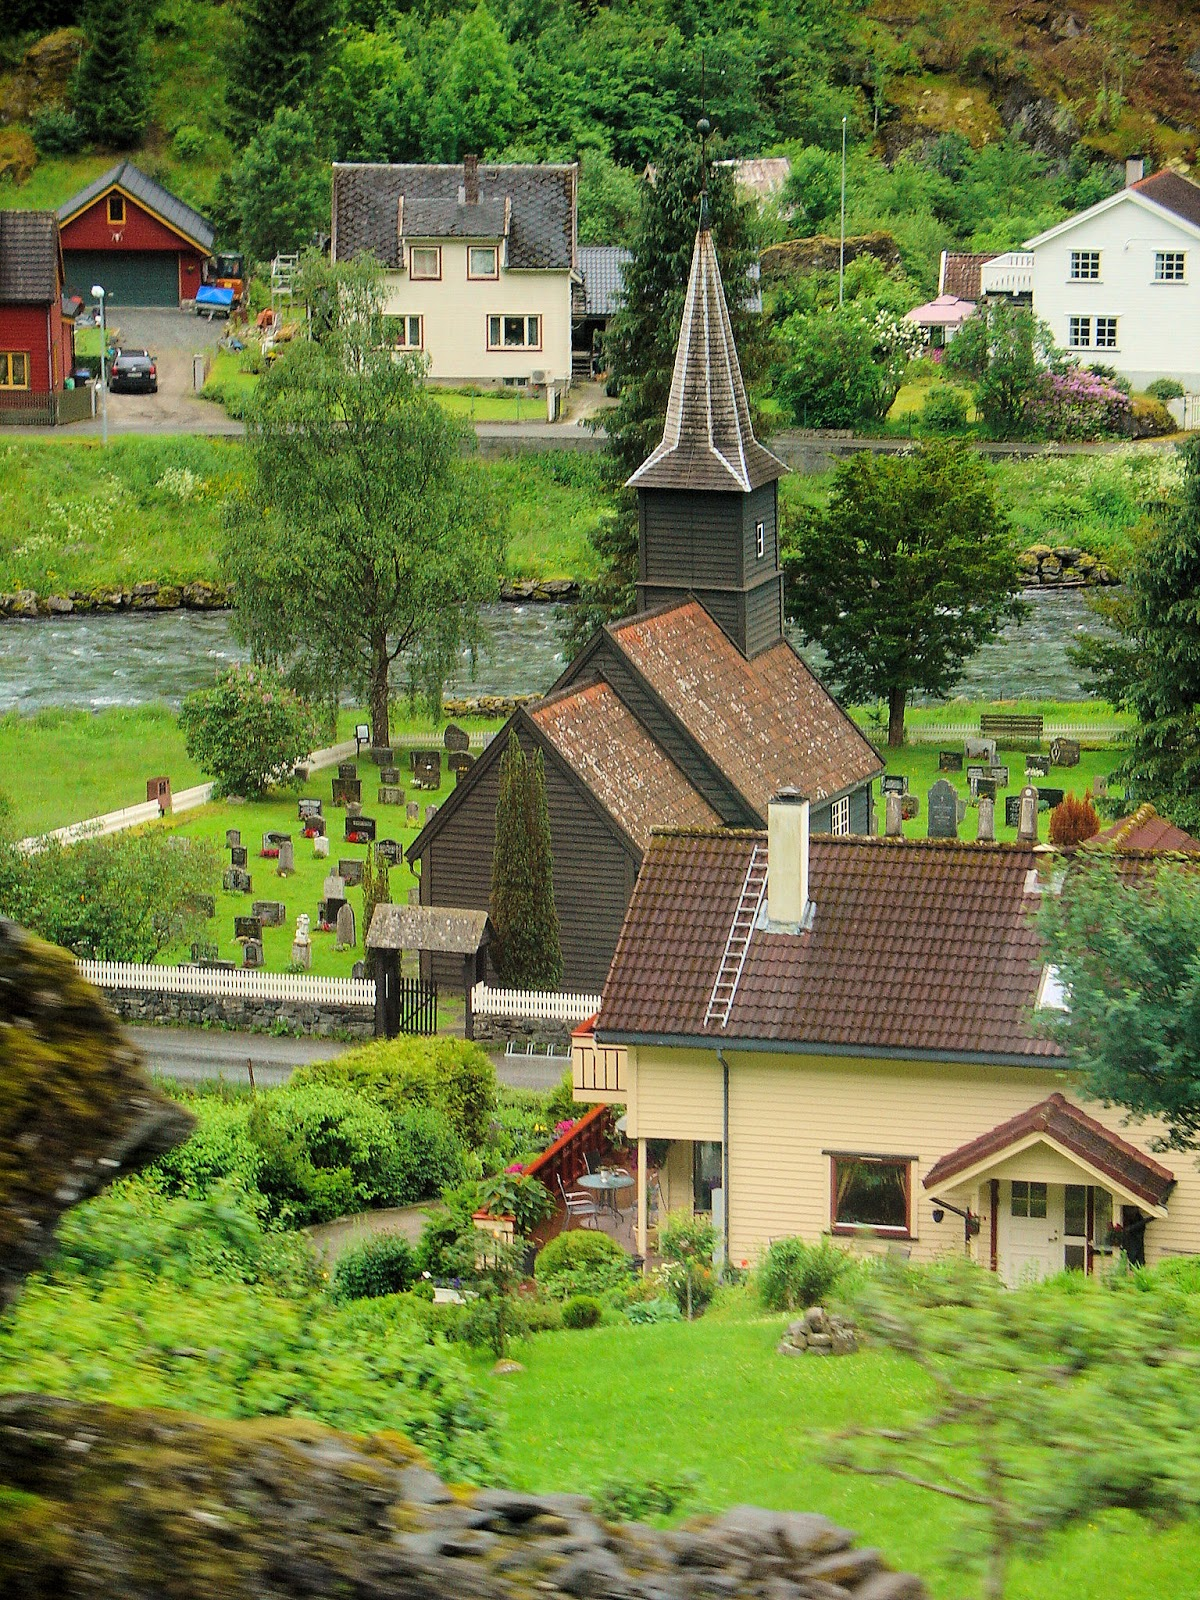 Storybook village of Flåm as seen from Flåm Railway.